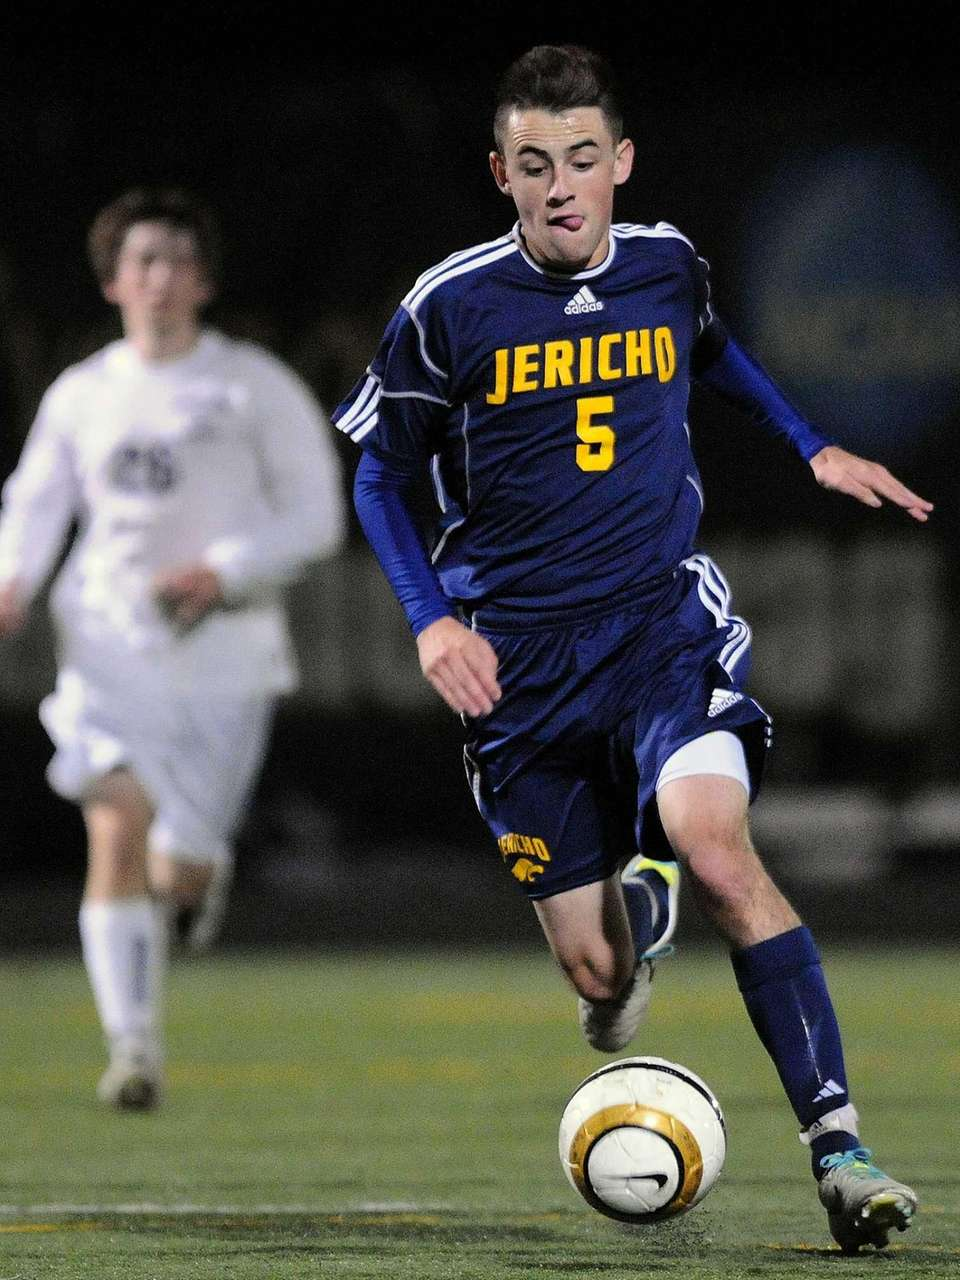 Jericho's Andrew Greenblatt races after a loose ball